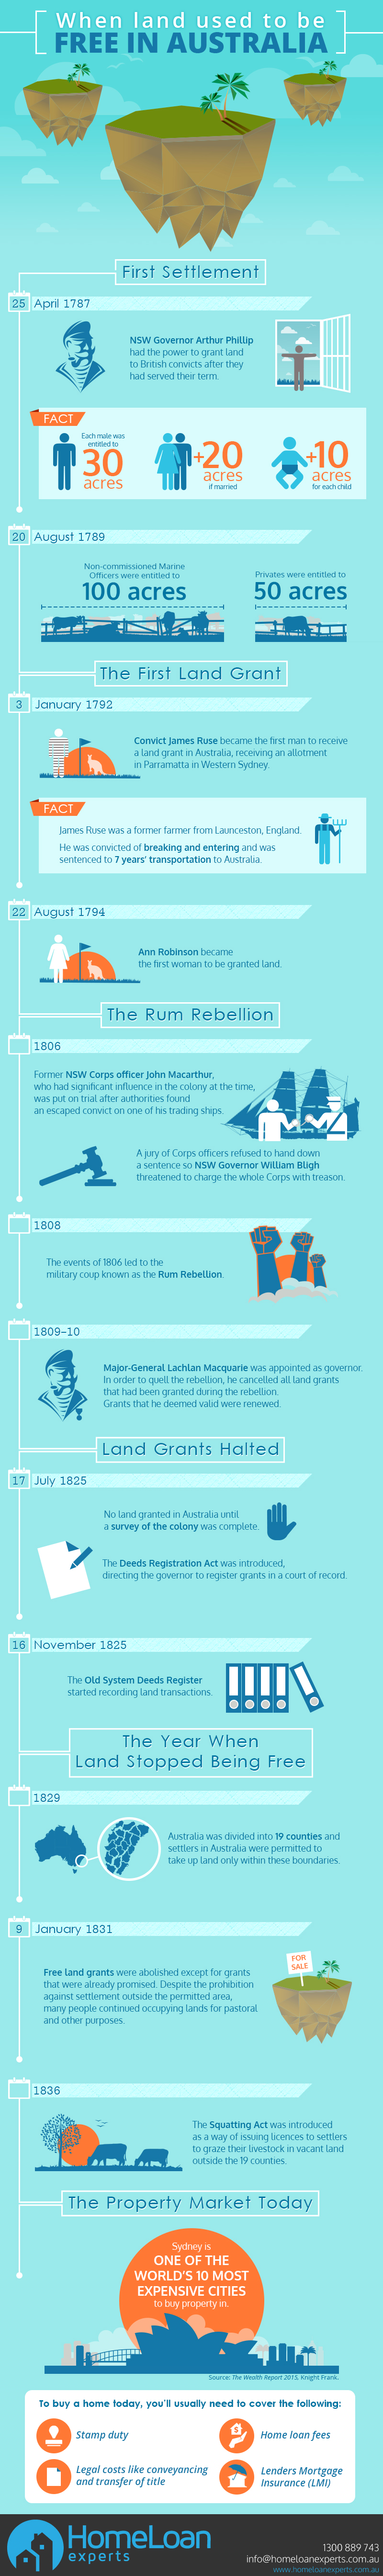 History of land grants